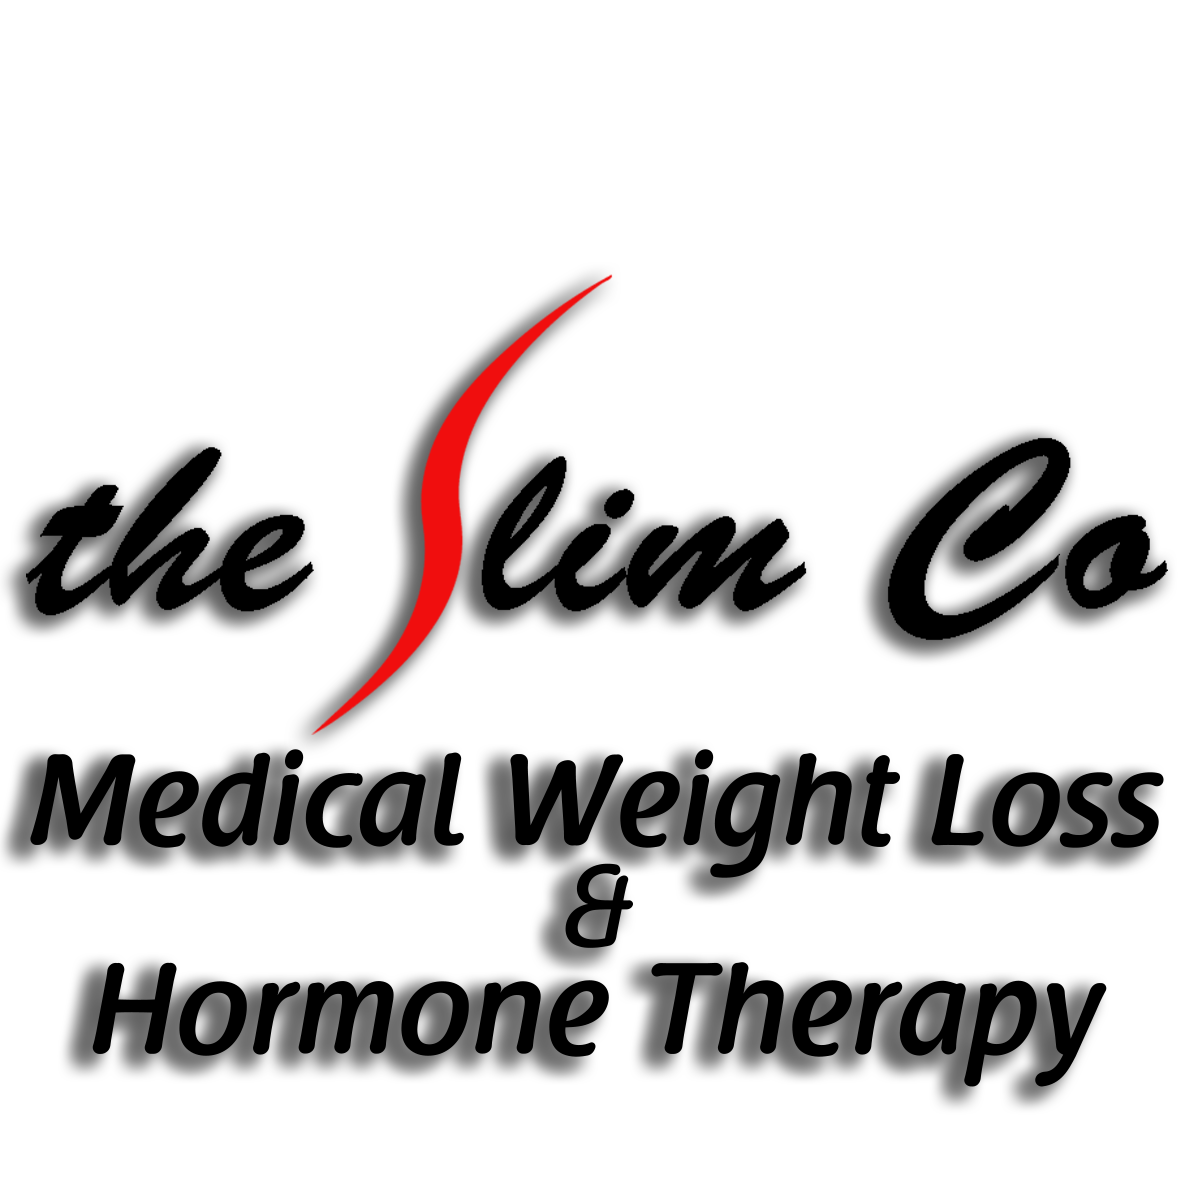 SlimCo Medical Weight Loss